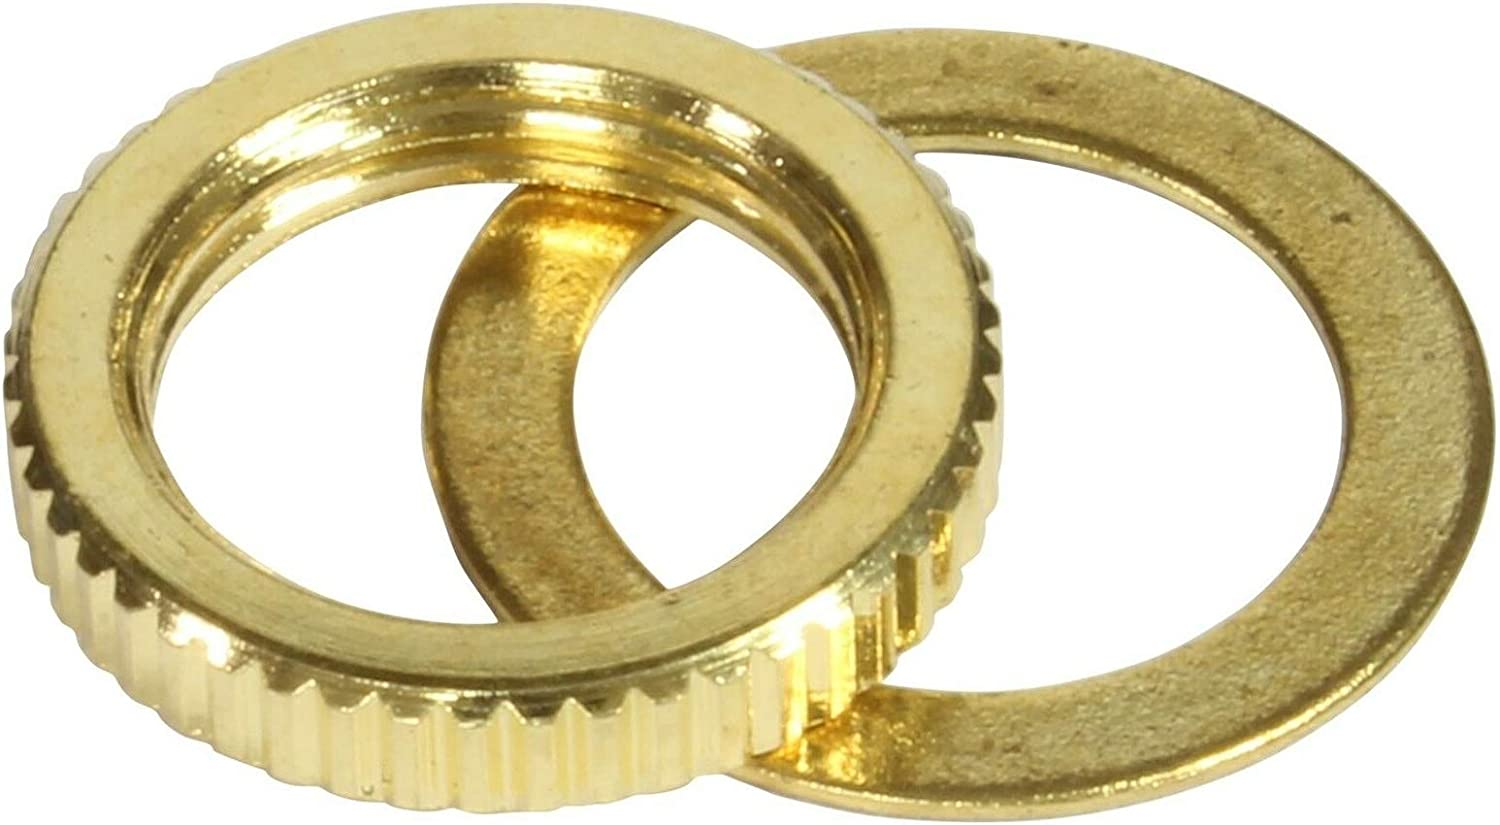 Nut and Washer gold for Toggle Switch Metric Fine Knurl M12 x 1.25 2 pcs